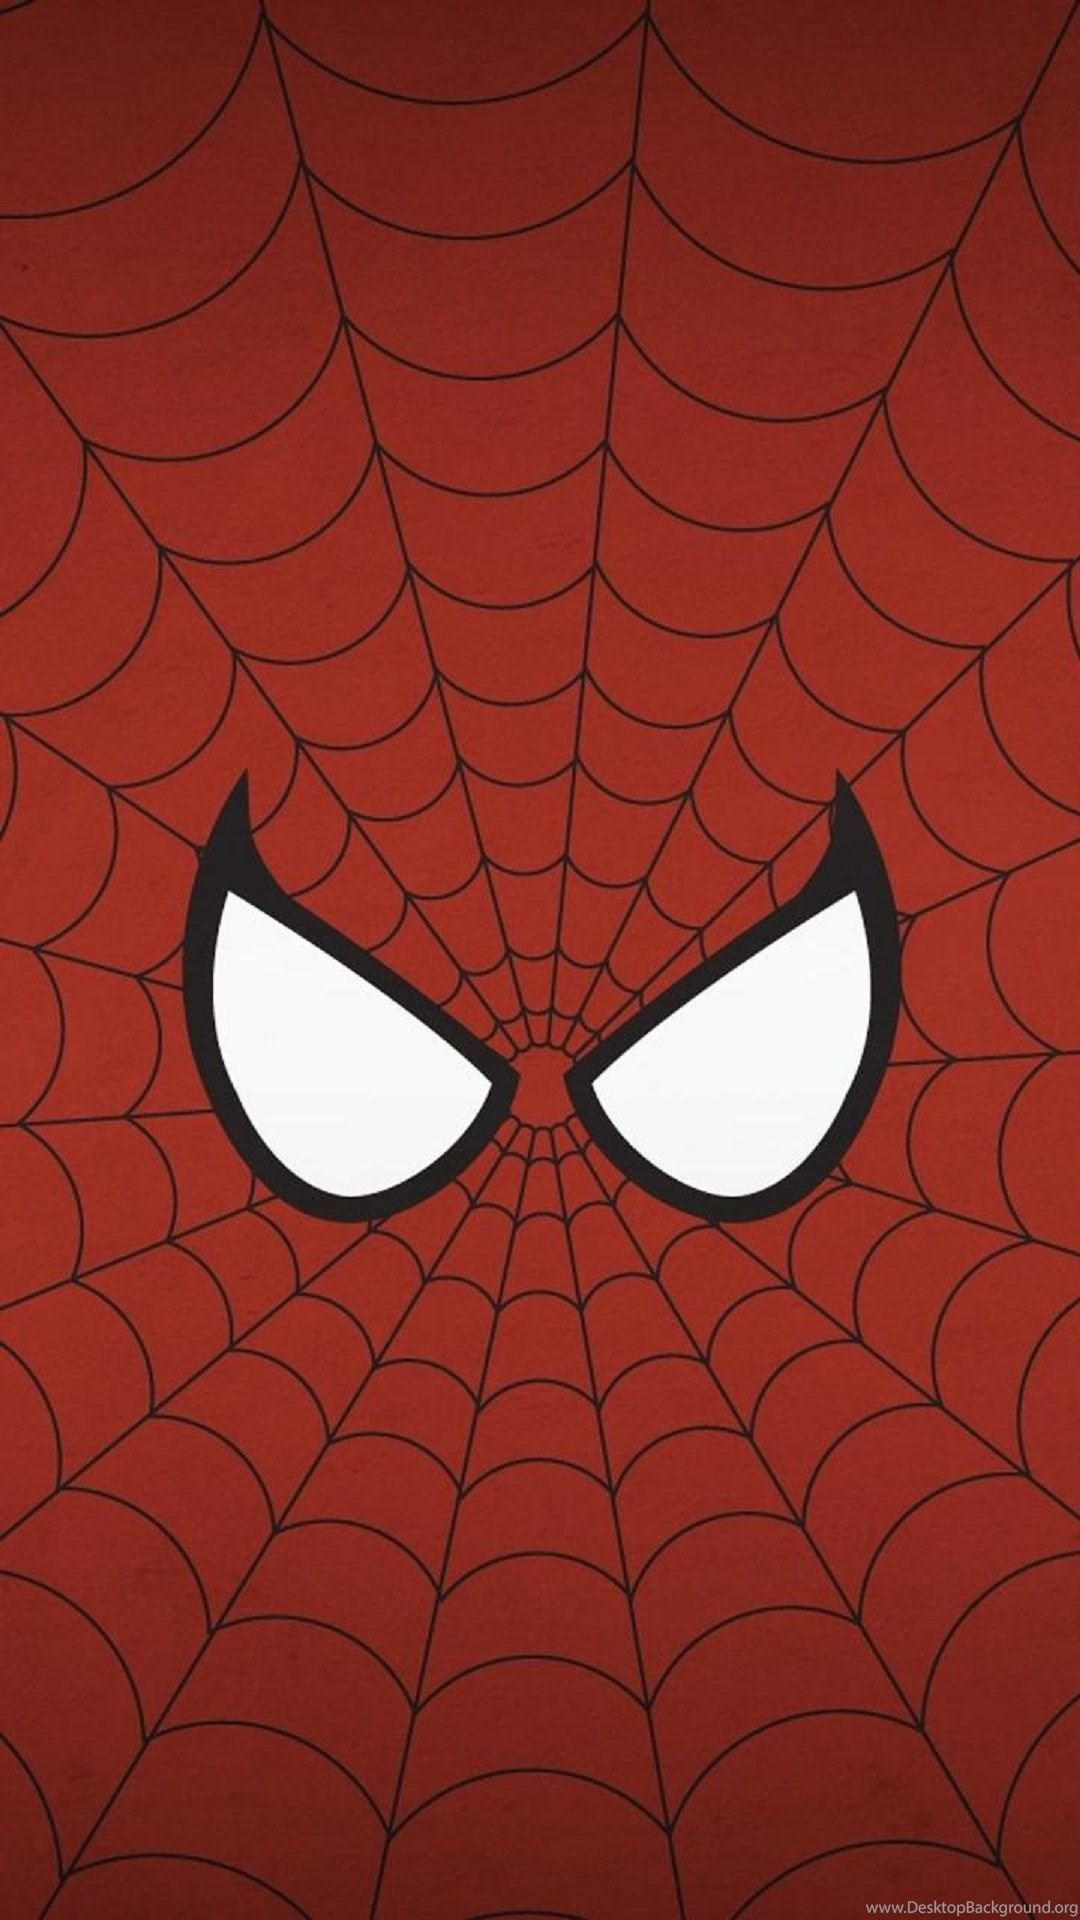 Samsung Galaxy S5 Plus Wallpaper Spiderman Android Wallpapers Desktop Background